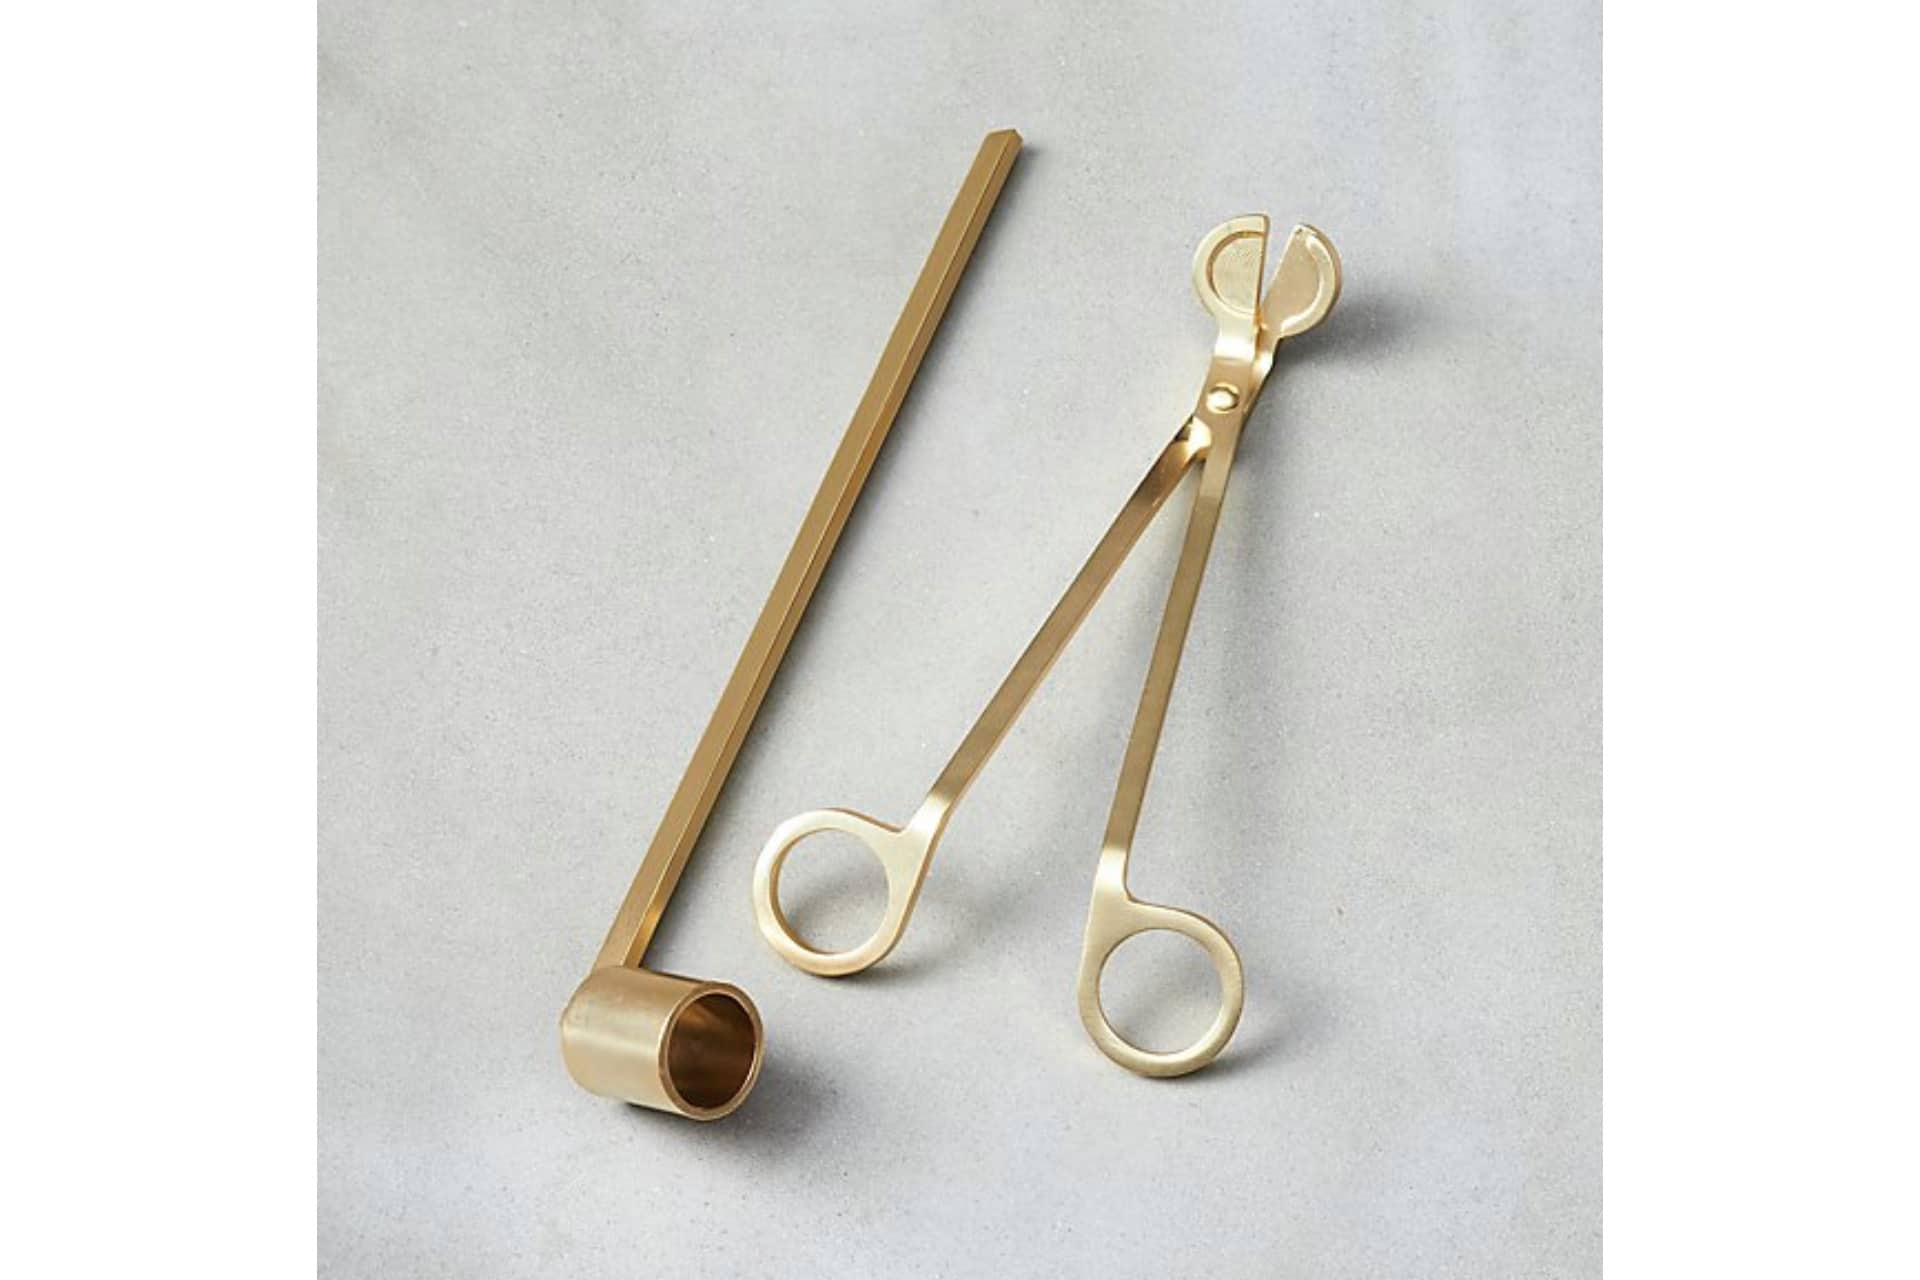 golde candle snuffer and wick trimmer